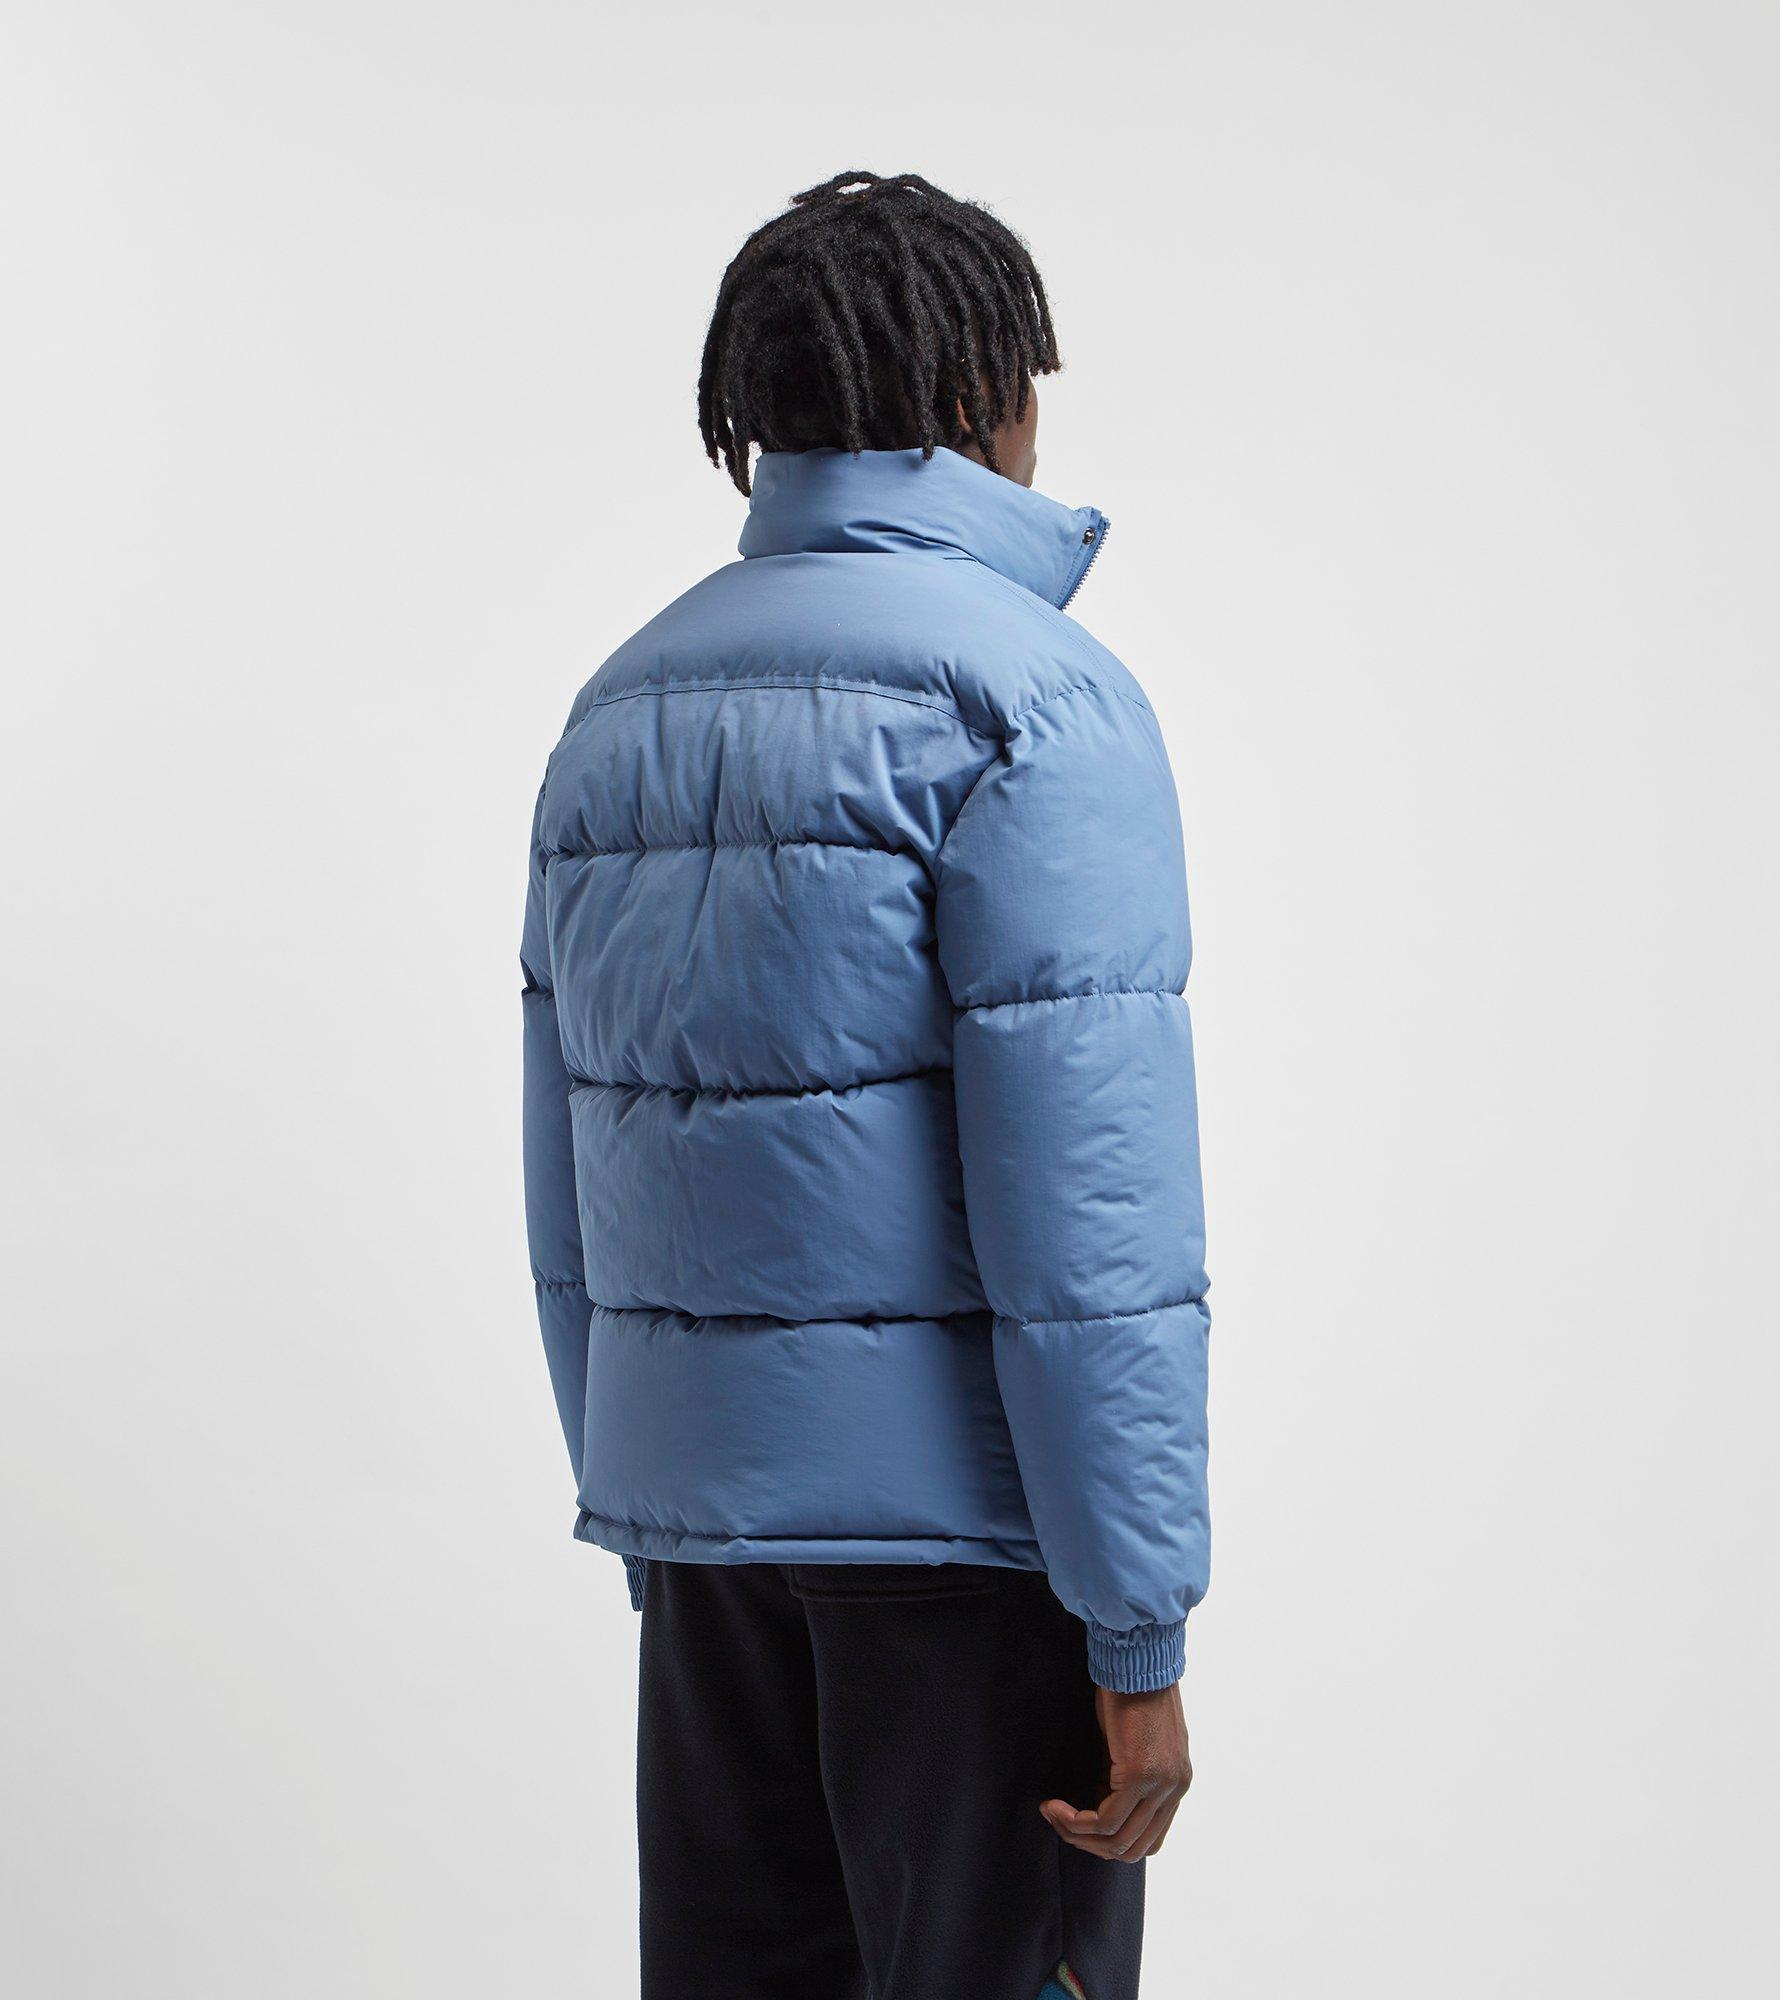 b520d7cdf8e Lyst - Fila Nanga Jacket - Size  Exclusive in Blue for Men